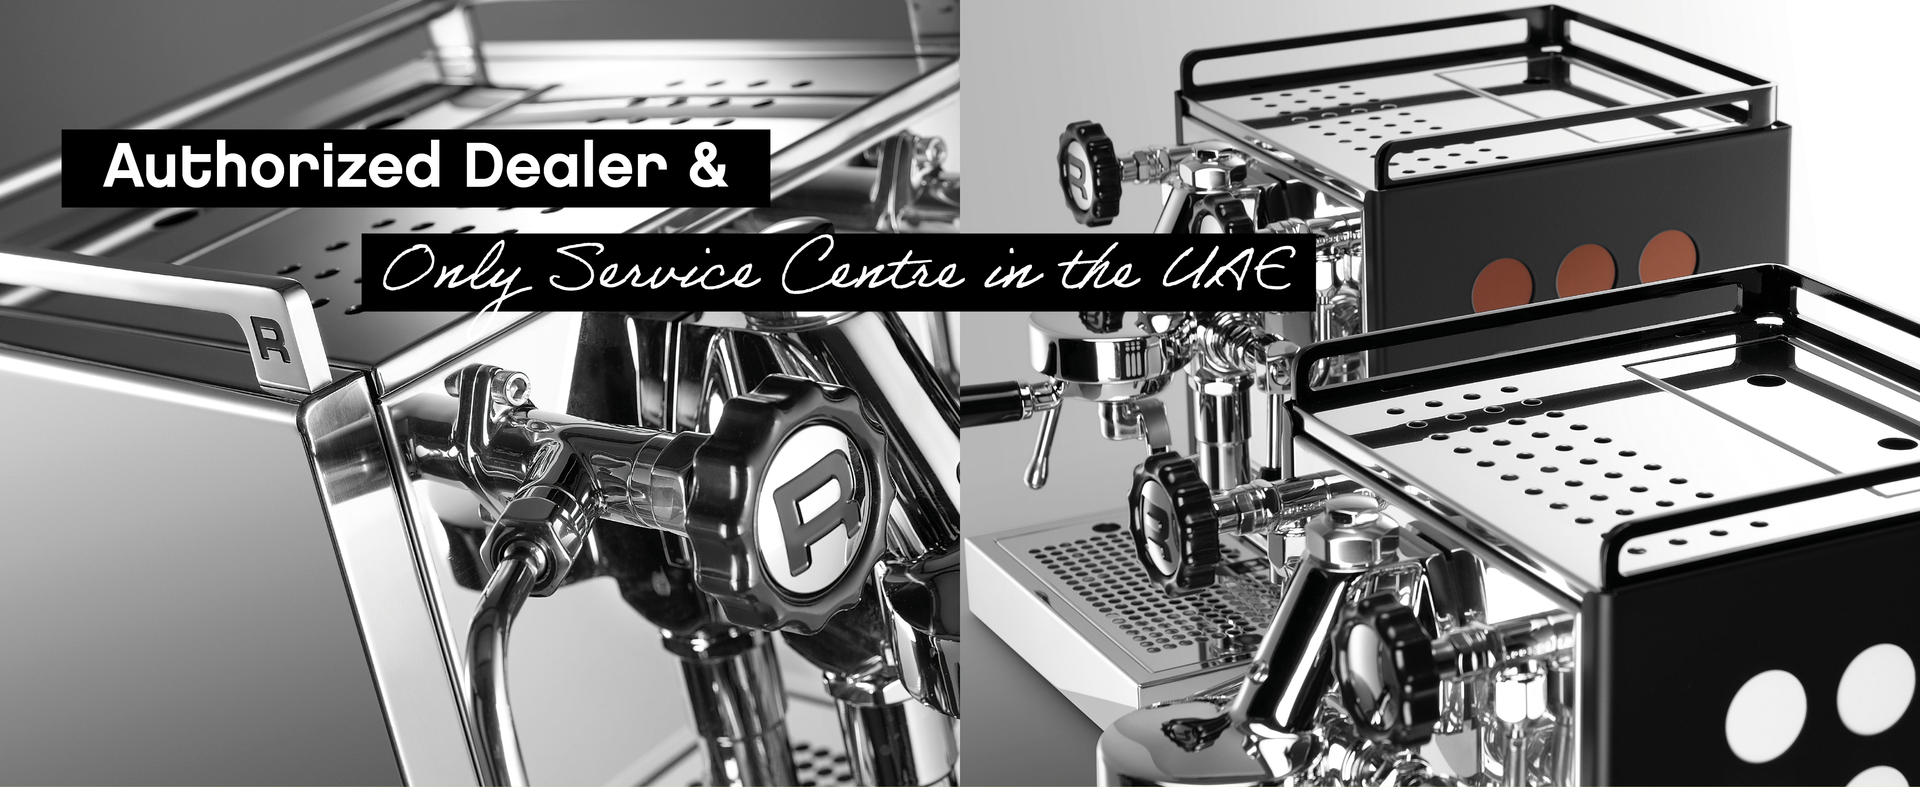 RAW Coffee company, an authorised dealer & the only service centre in the UAE